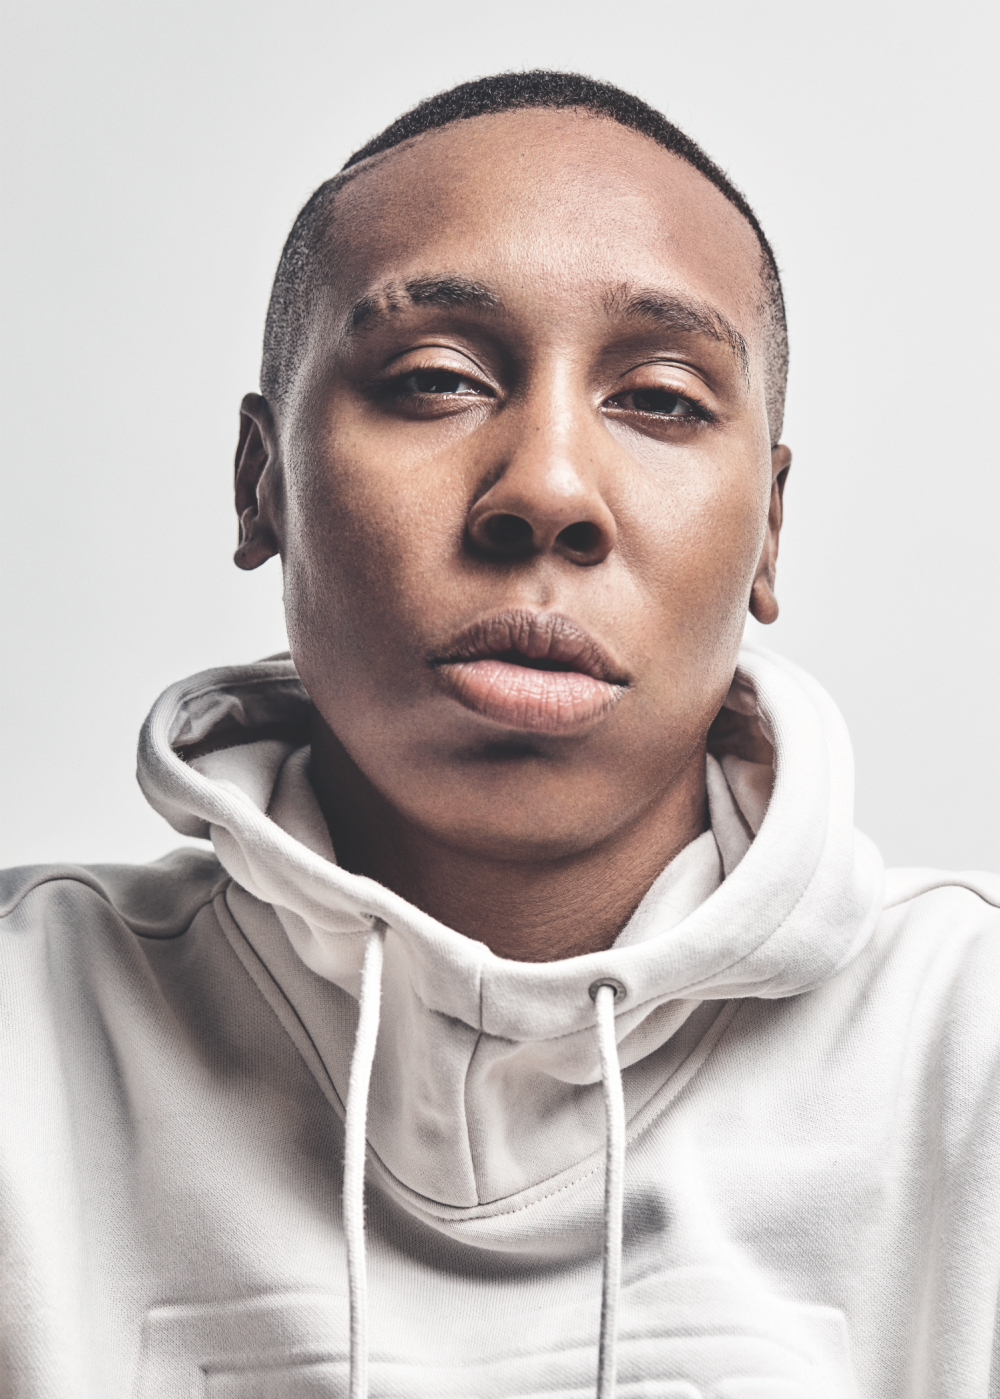 lena waithe gay los angeles pride